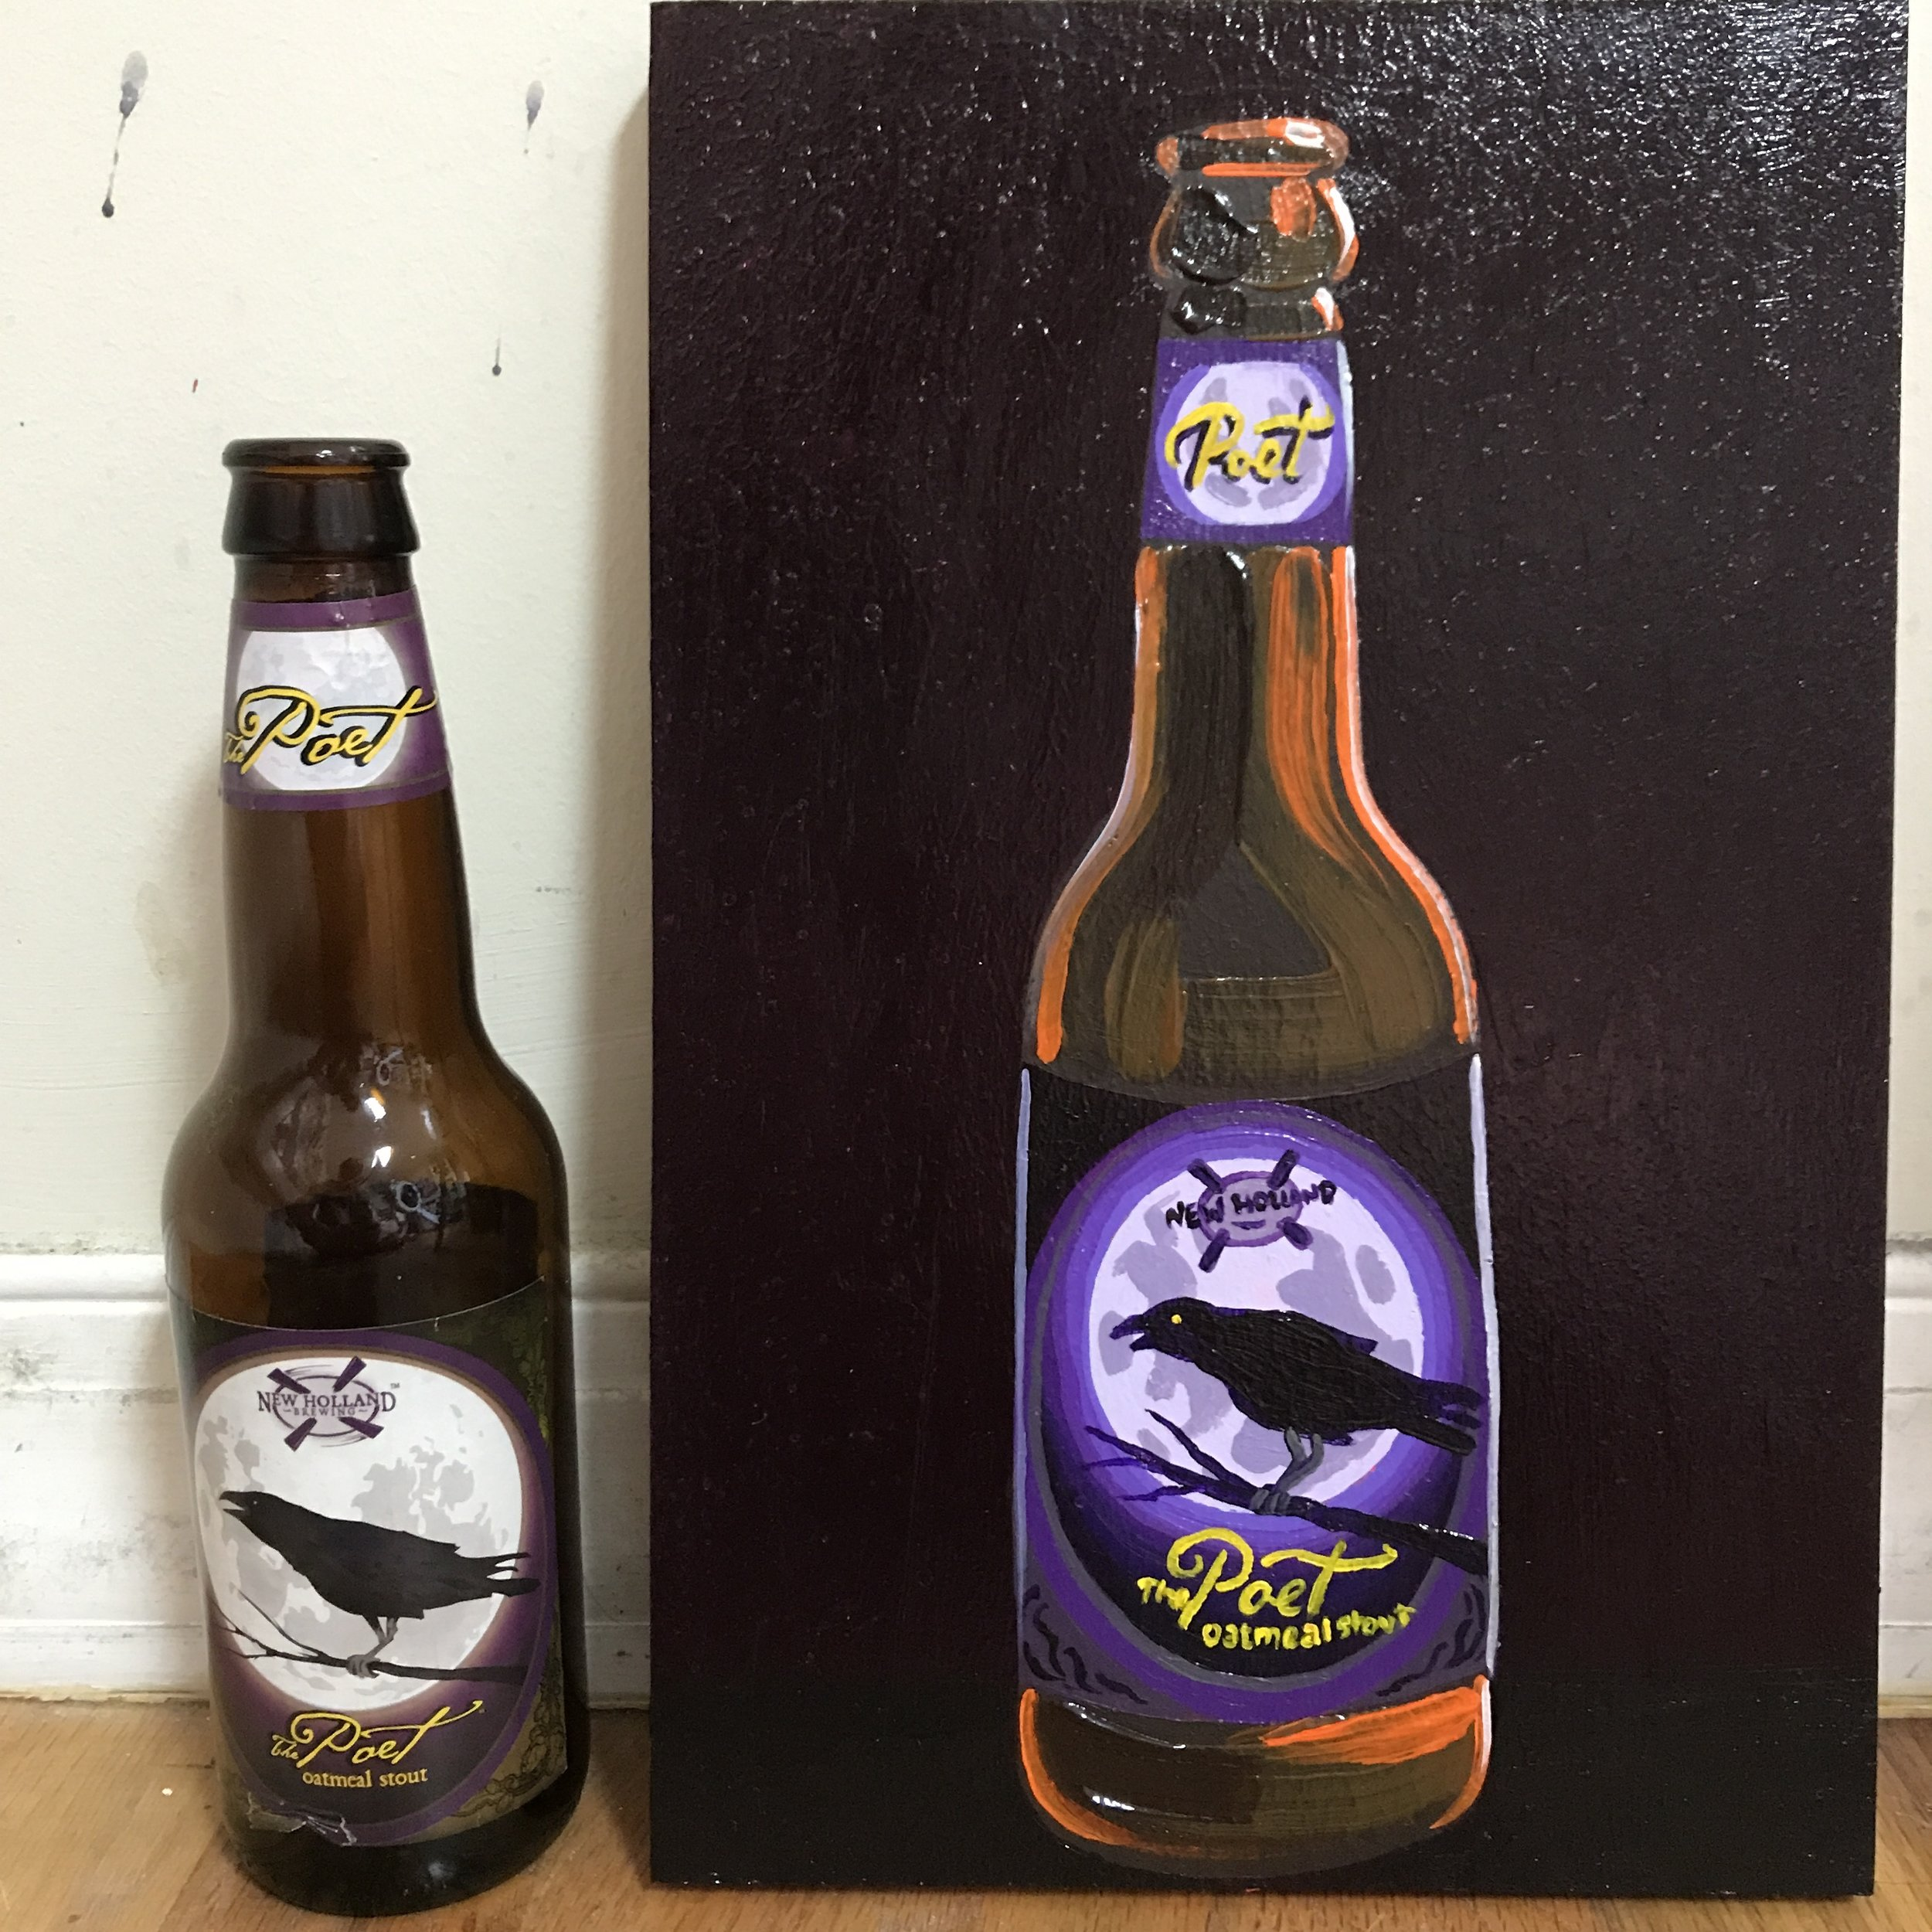 82 New Holland The Poet Oatmeal Stout (USA)